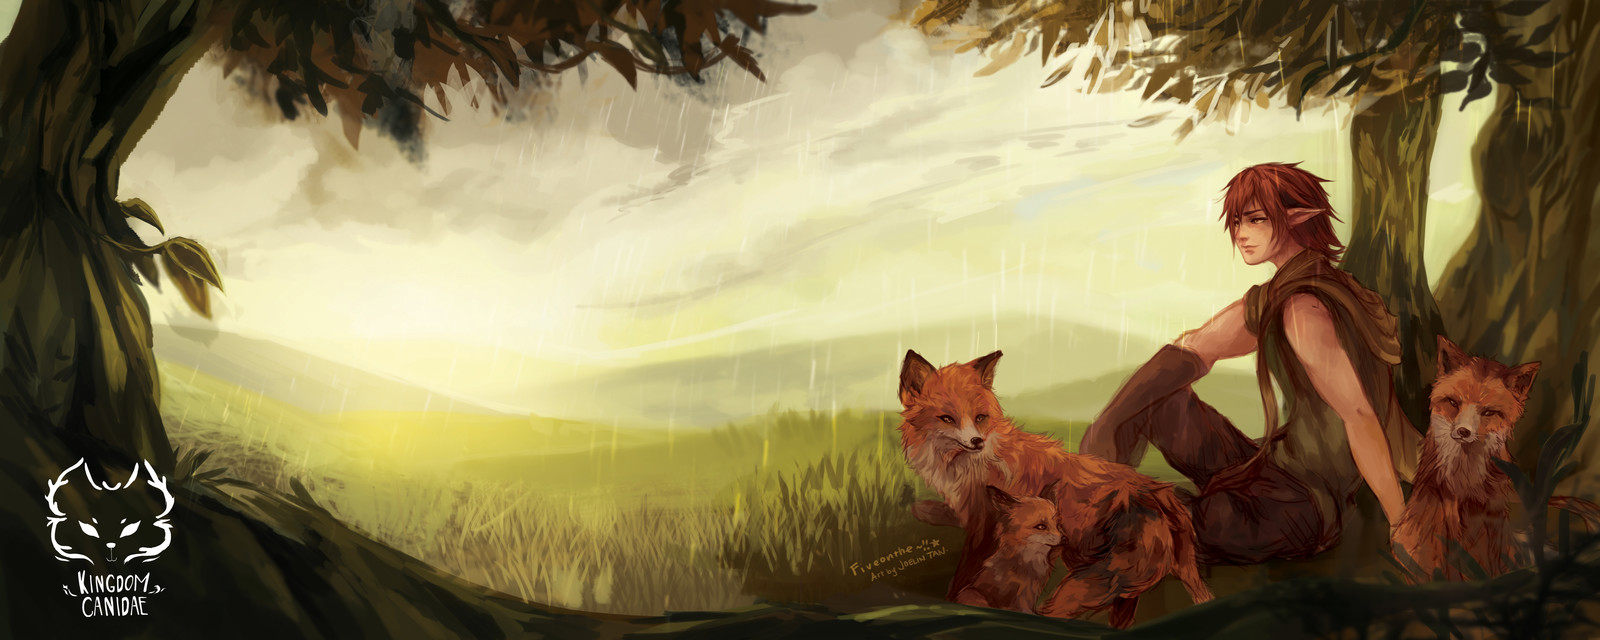 Kingdom Canidae: Red Fox